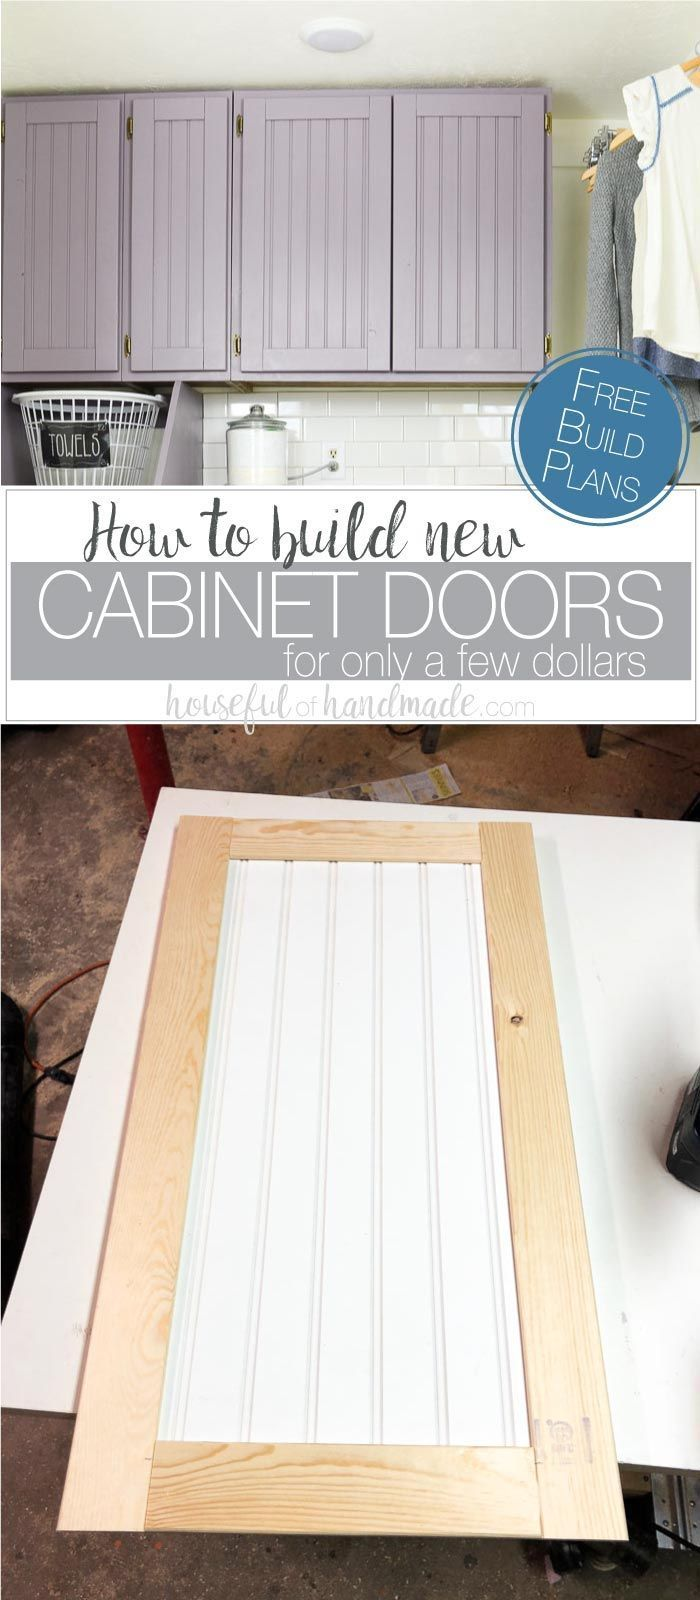 How To Build Cabinet Doors Cheap Diy Cabinet Doors New Cabinet Doors Shaker Style Cabinet Doors